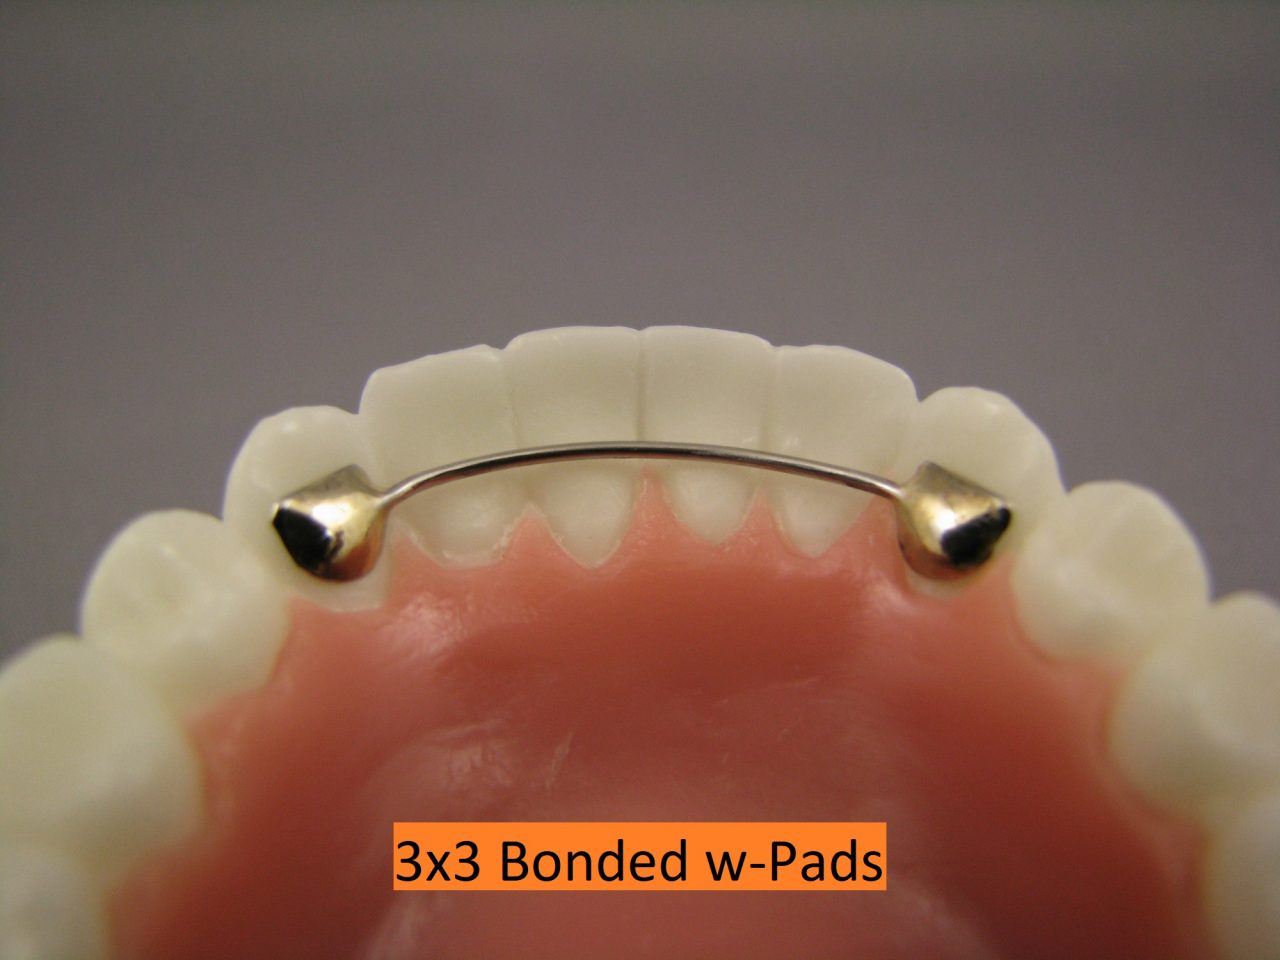 Lingual Arch 3x3 Bonded W-Pads